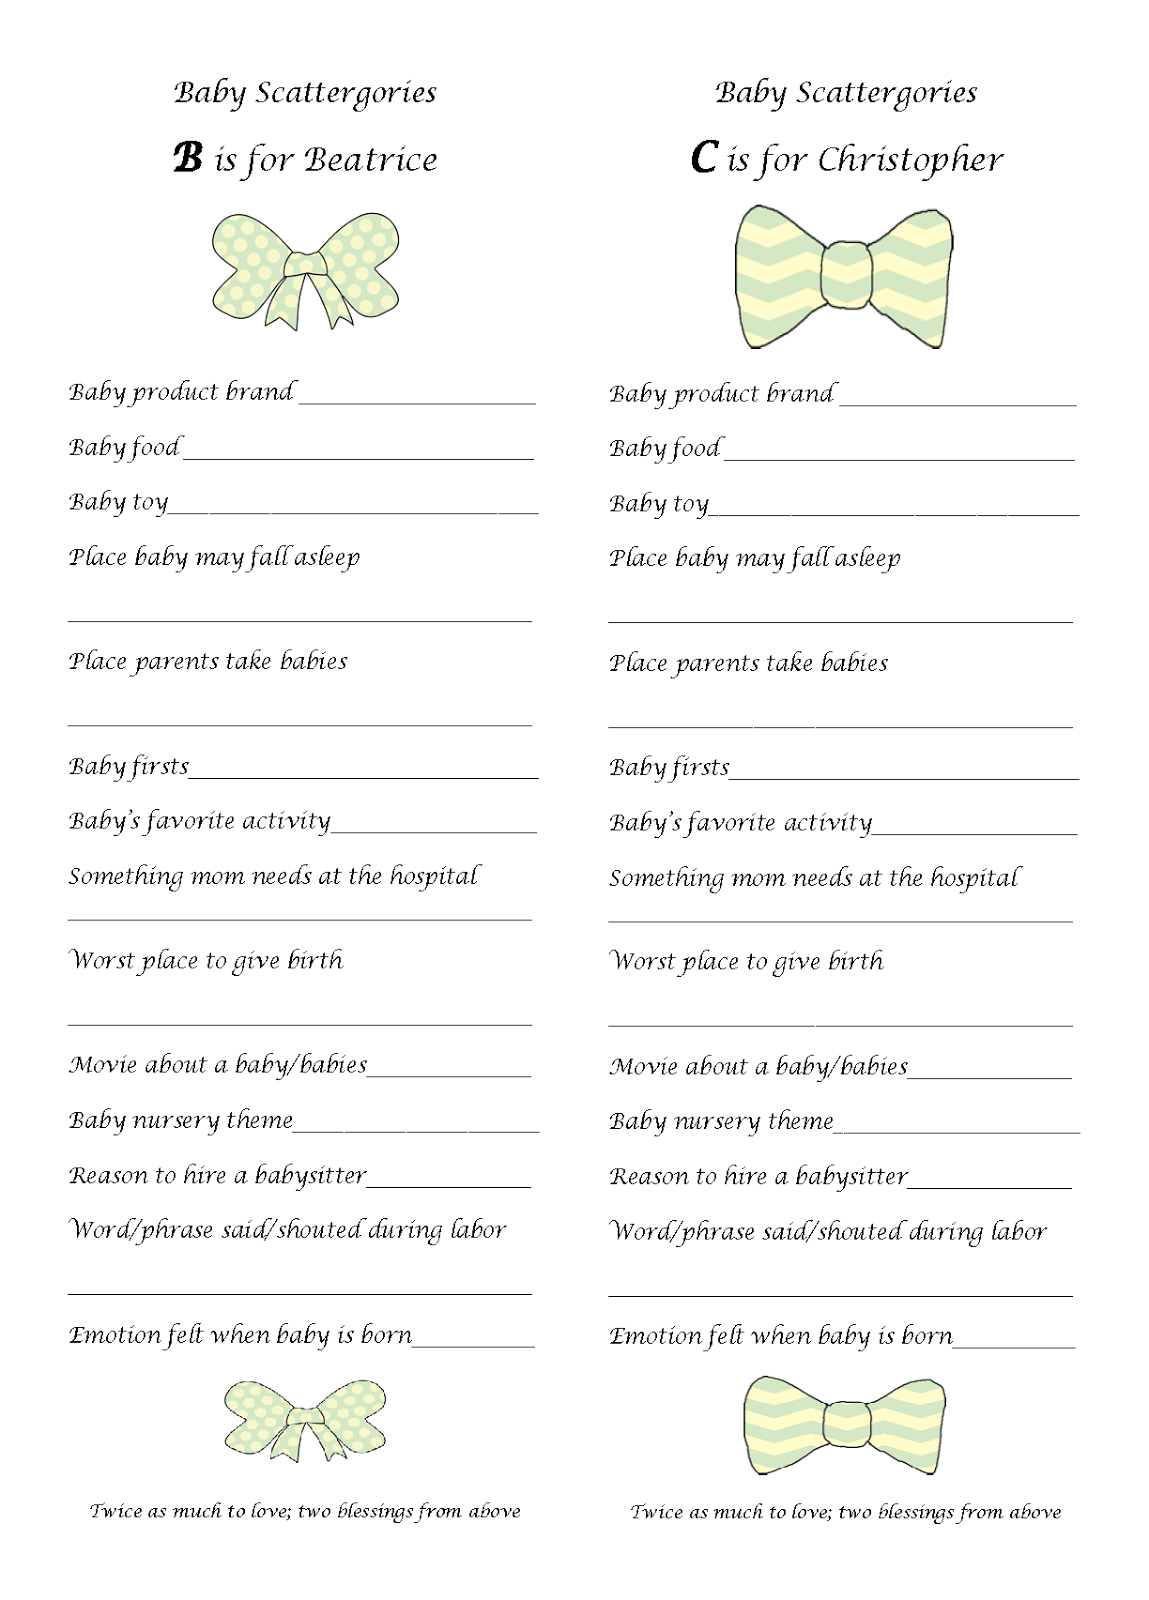 Bows & Bow Ties Shower: The Games | Baby Shower | Pinterest | Baby ...